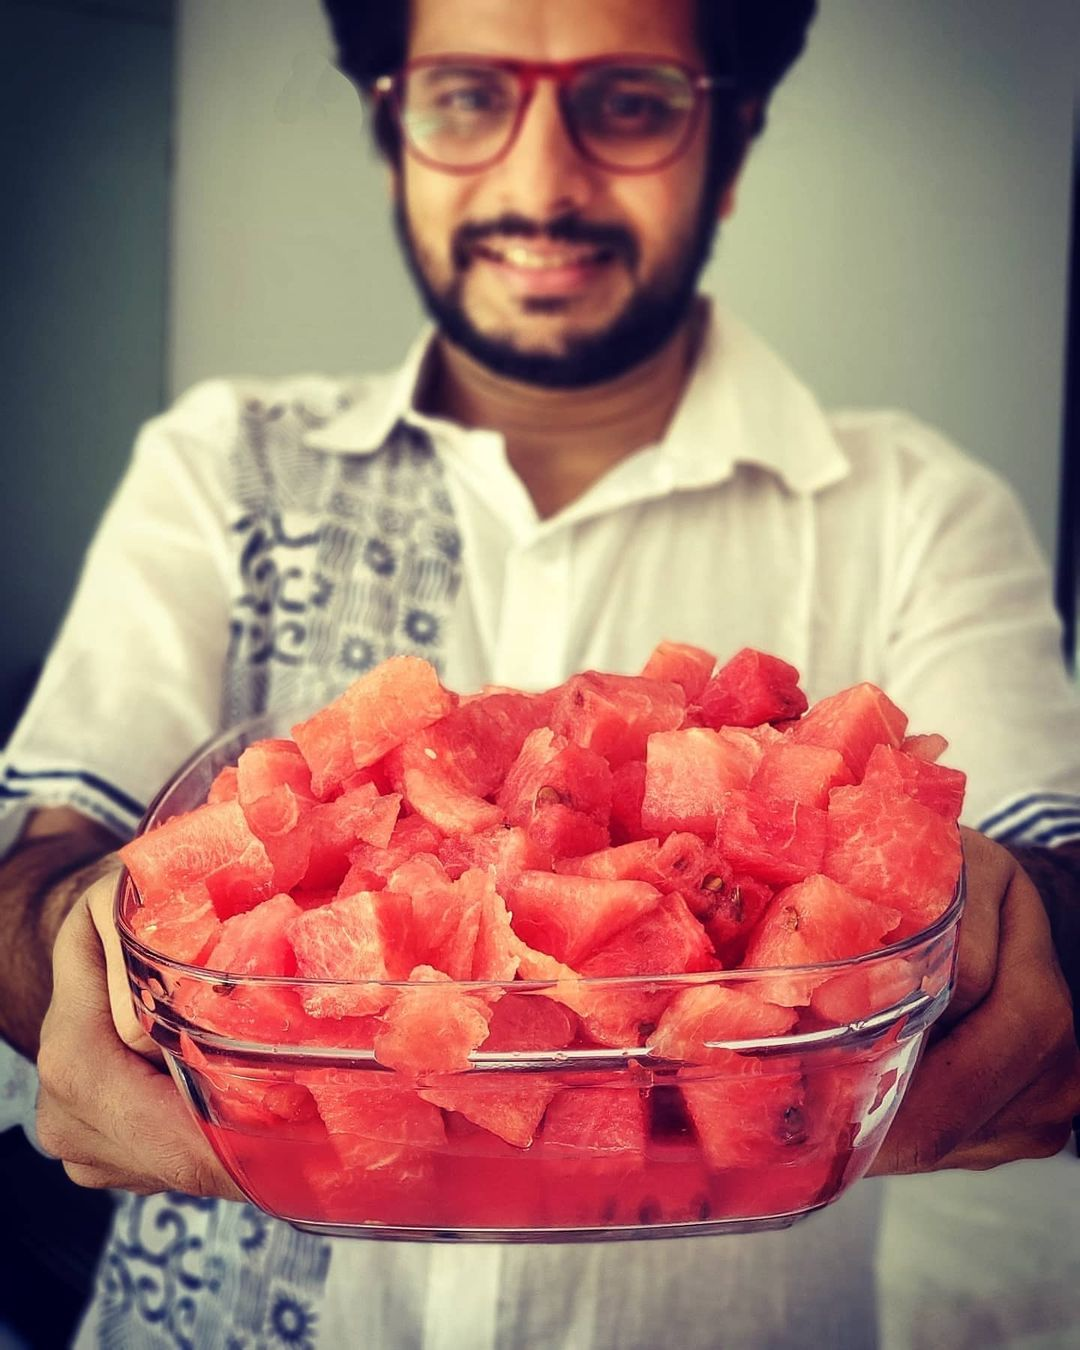 Today, one year ago 🍉 And we're EXACTLY where we were: locked-down at home in a locked-down town 😅 #stayhome #staysafe #mumbai . #watermelon #healthyeating #ilovefruits #actor #OjasRawal #fruit #food #yummy #healthy #fruits #nutrition #fitness #diet #foodlover #fruitlover #healthylifestyle #juicy #watermelons #health #fruitlovers #fresh #yum #eat #goodfood #tasty #fruitlove #staysafestayhome